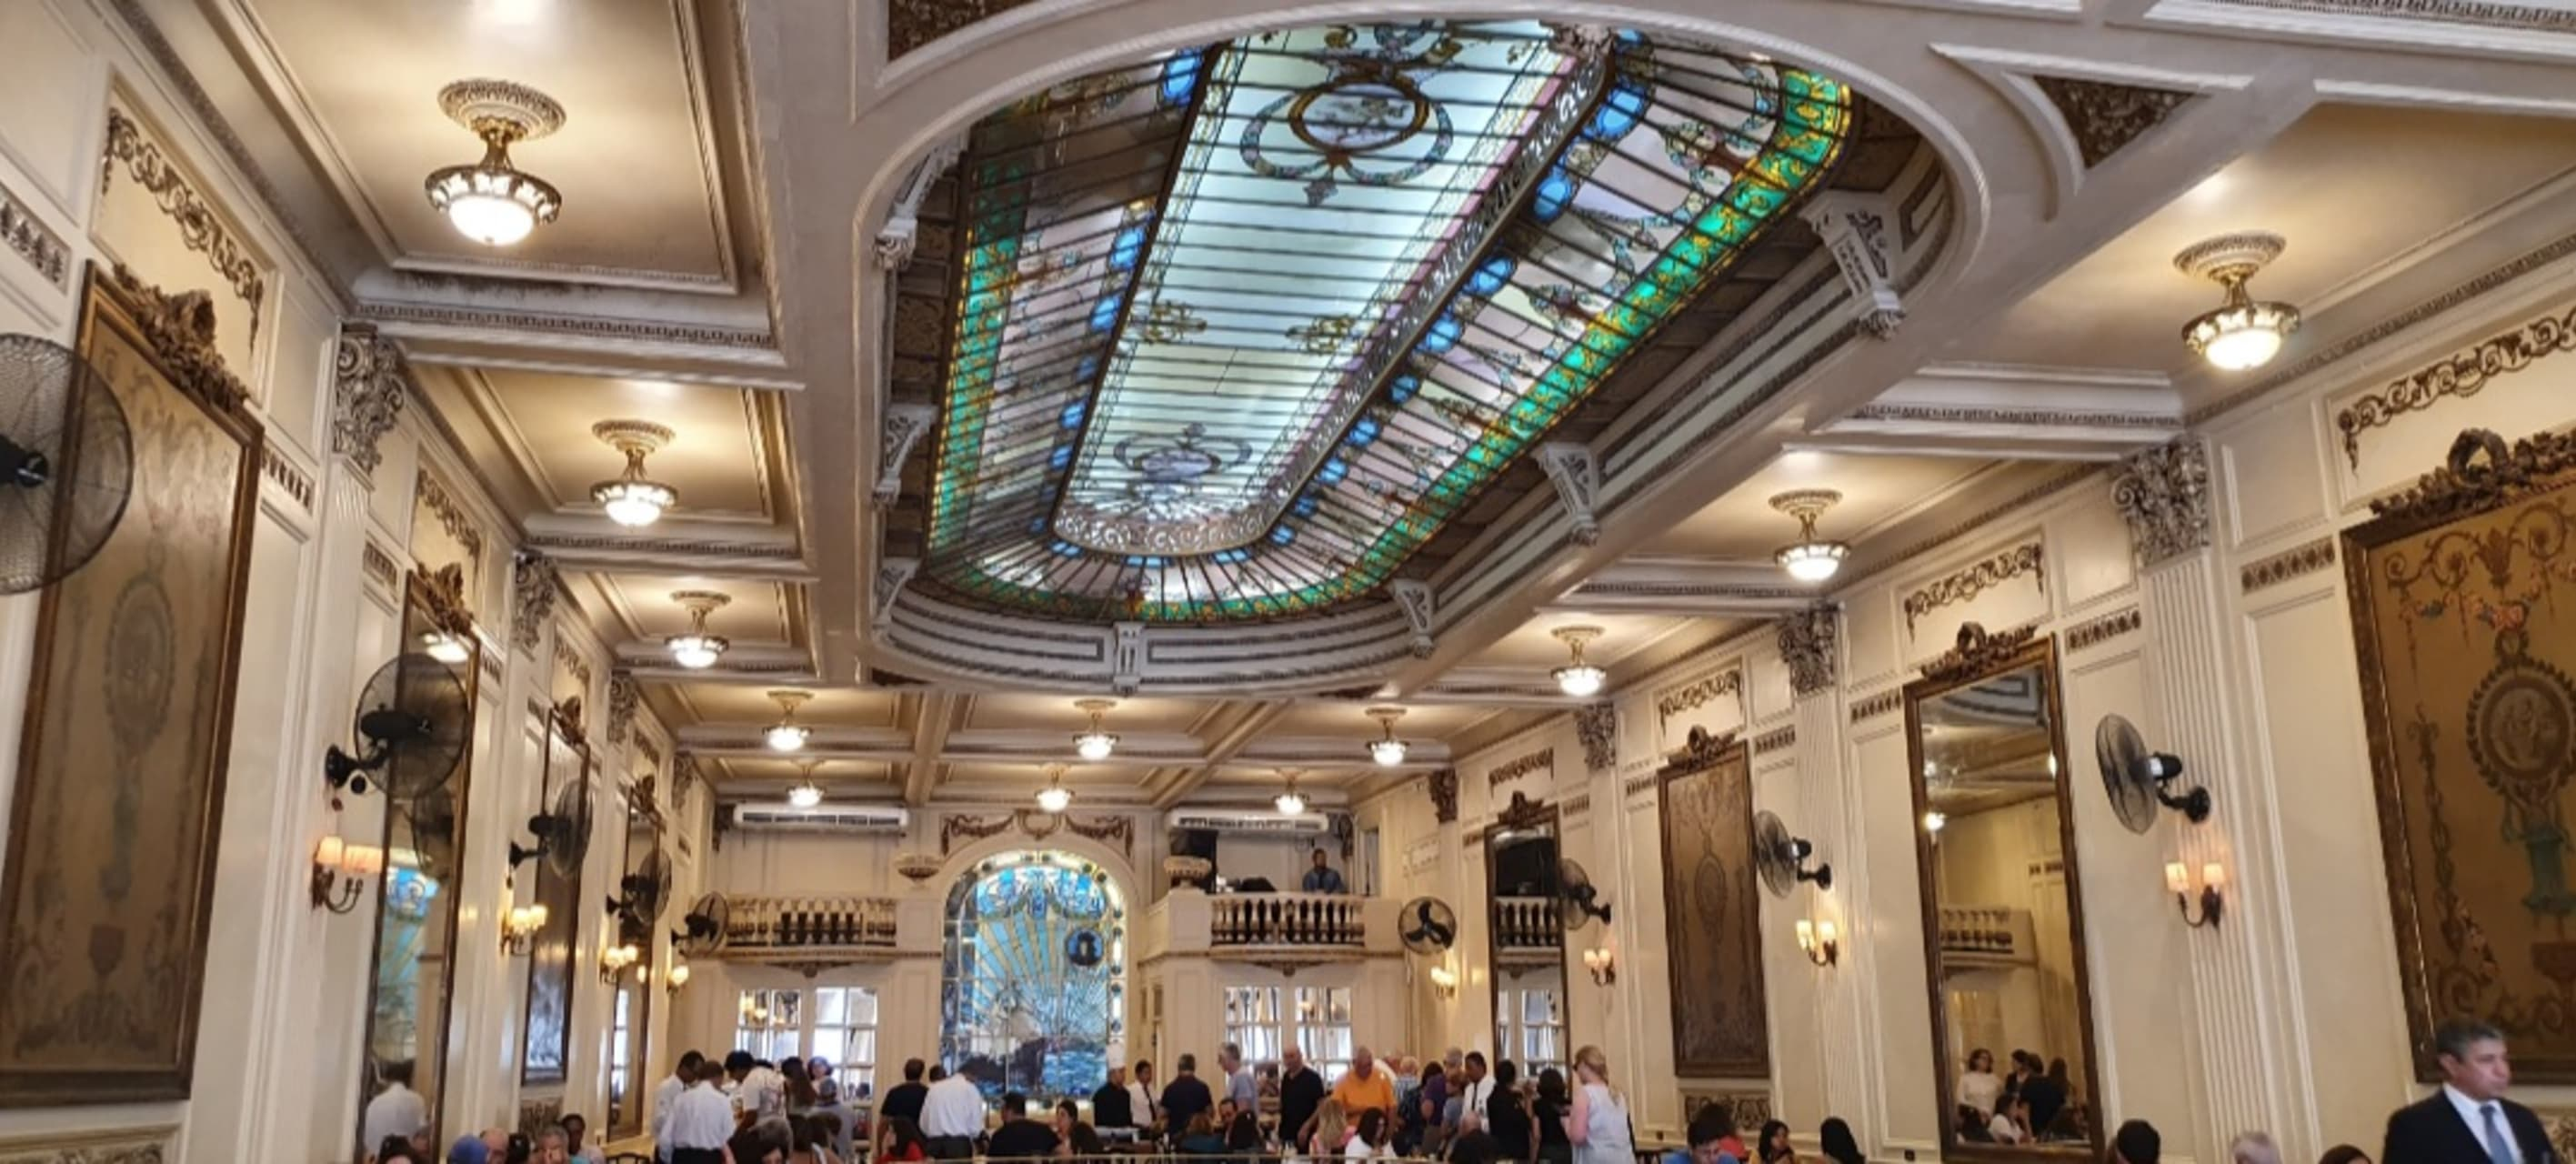 Rio de Janeiro - Confeitaria Colombo: one of the most beautiful cafes in the world